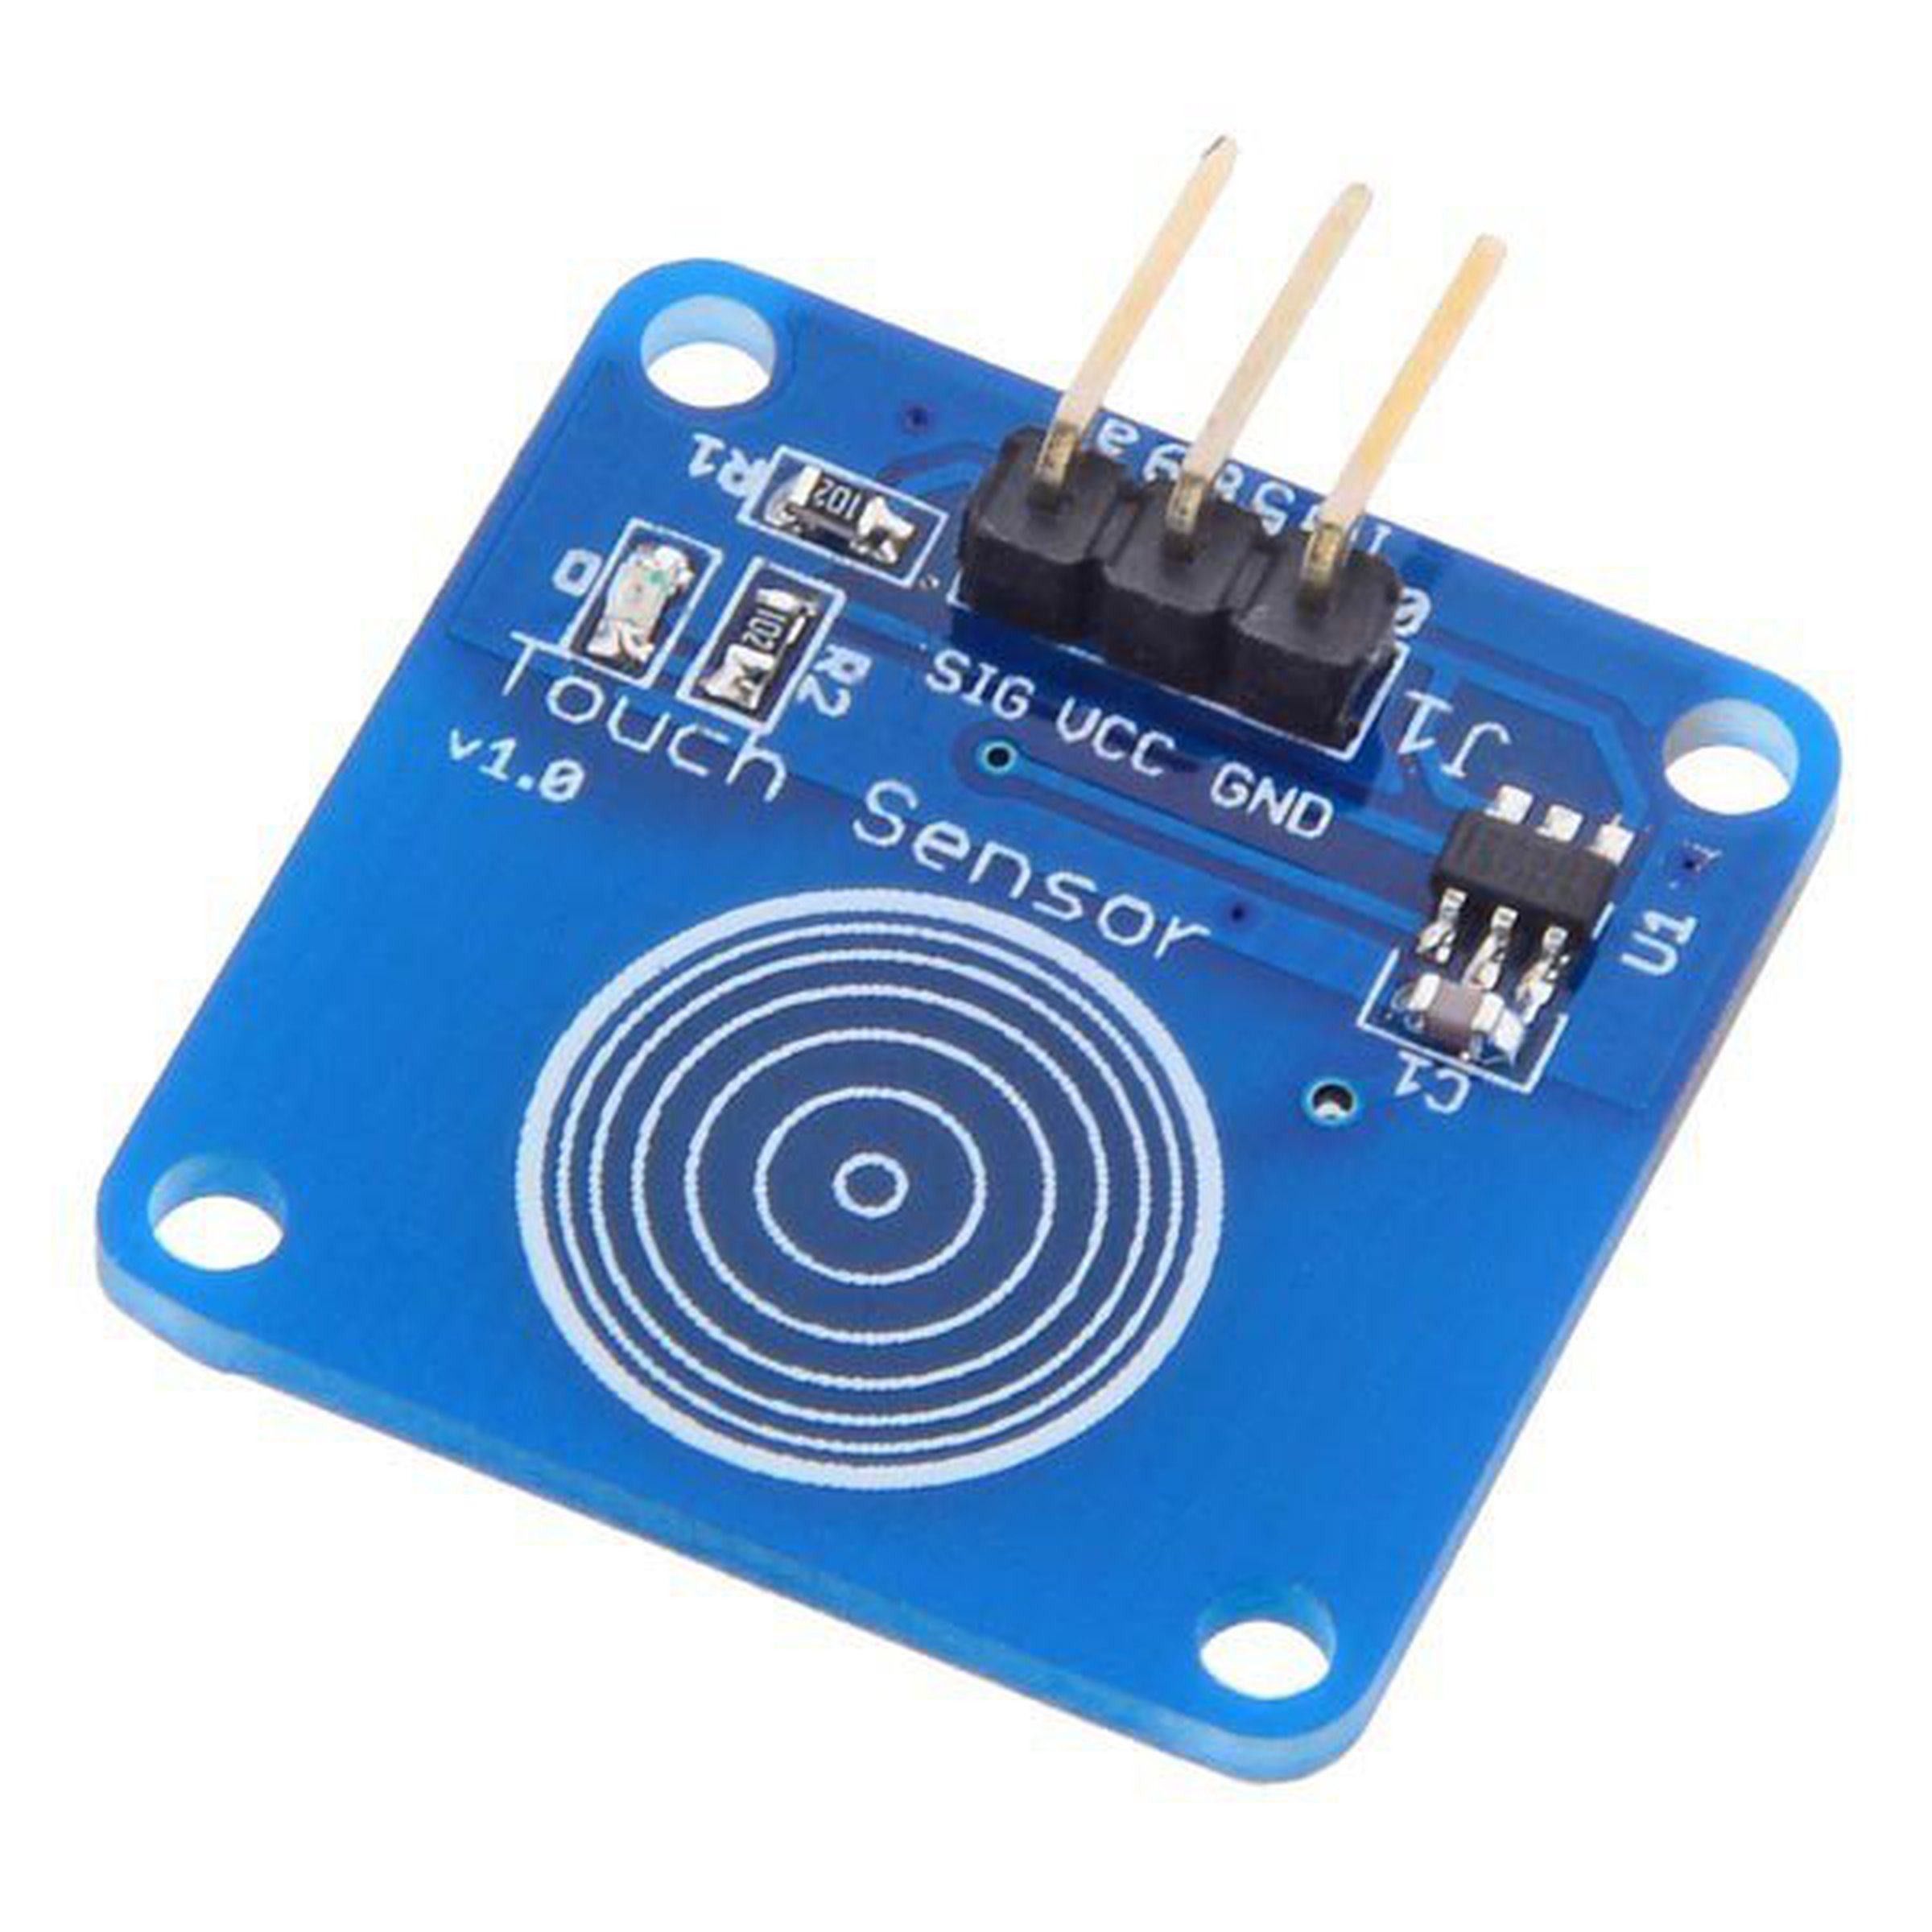 Jog Type Touch Sensor Module Capacitive Switch For Circuit Arduino 1